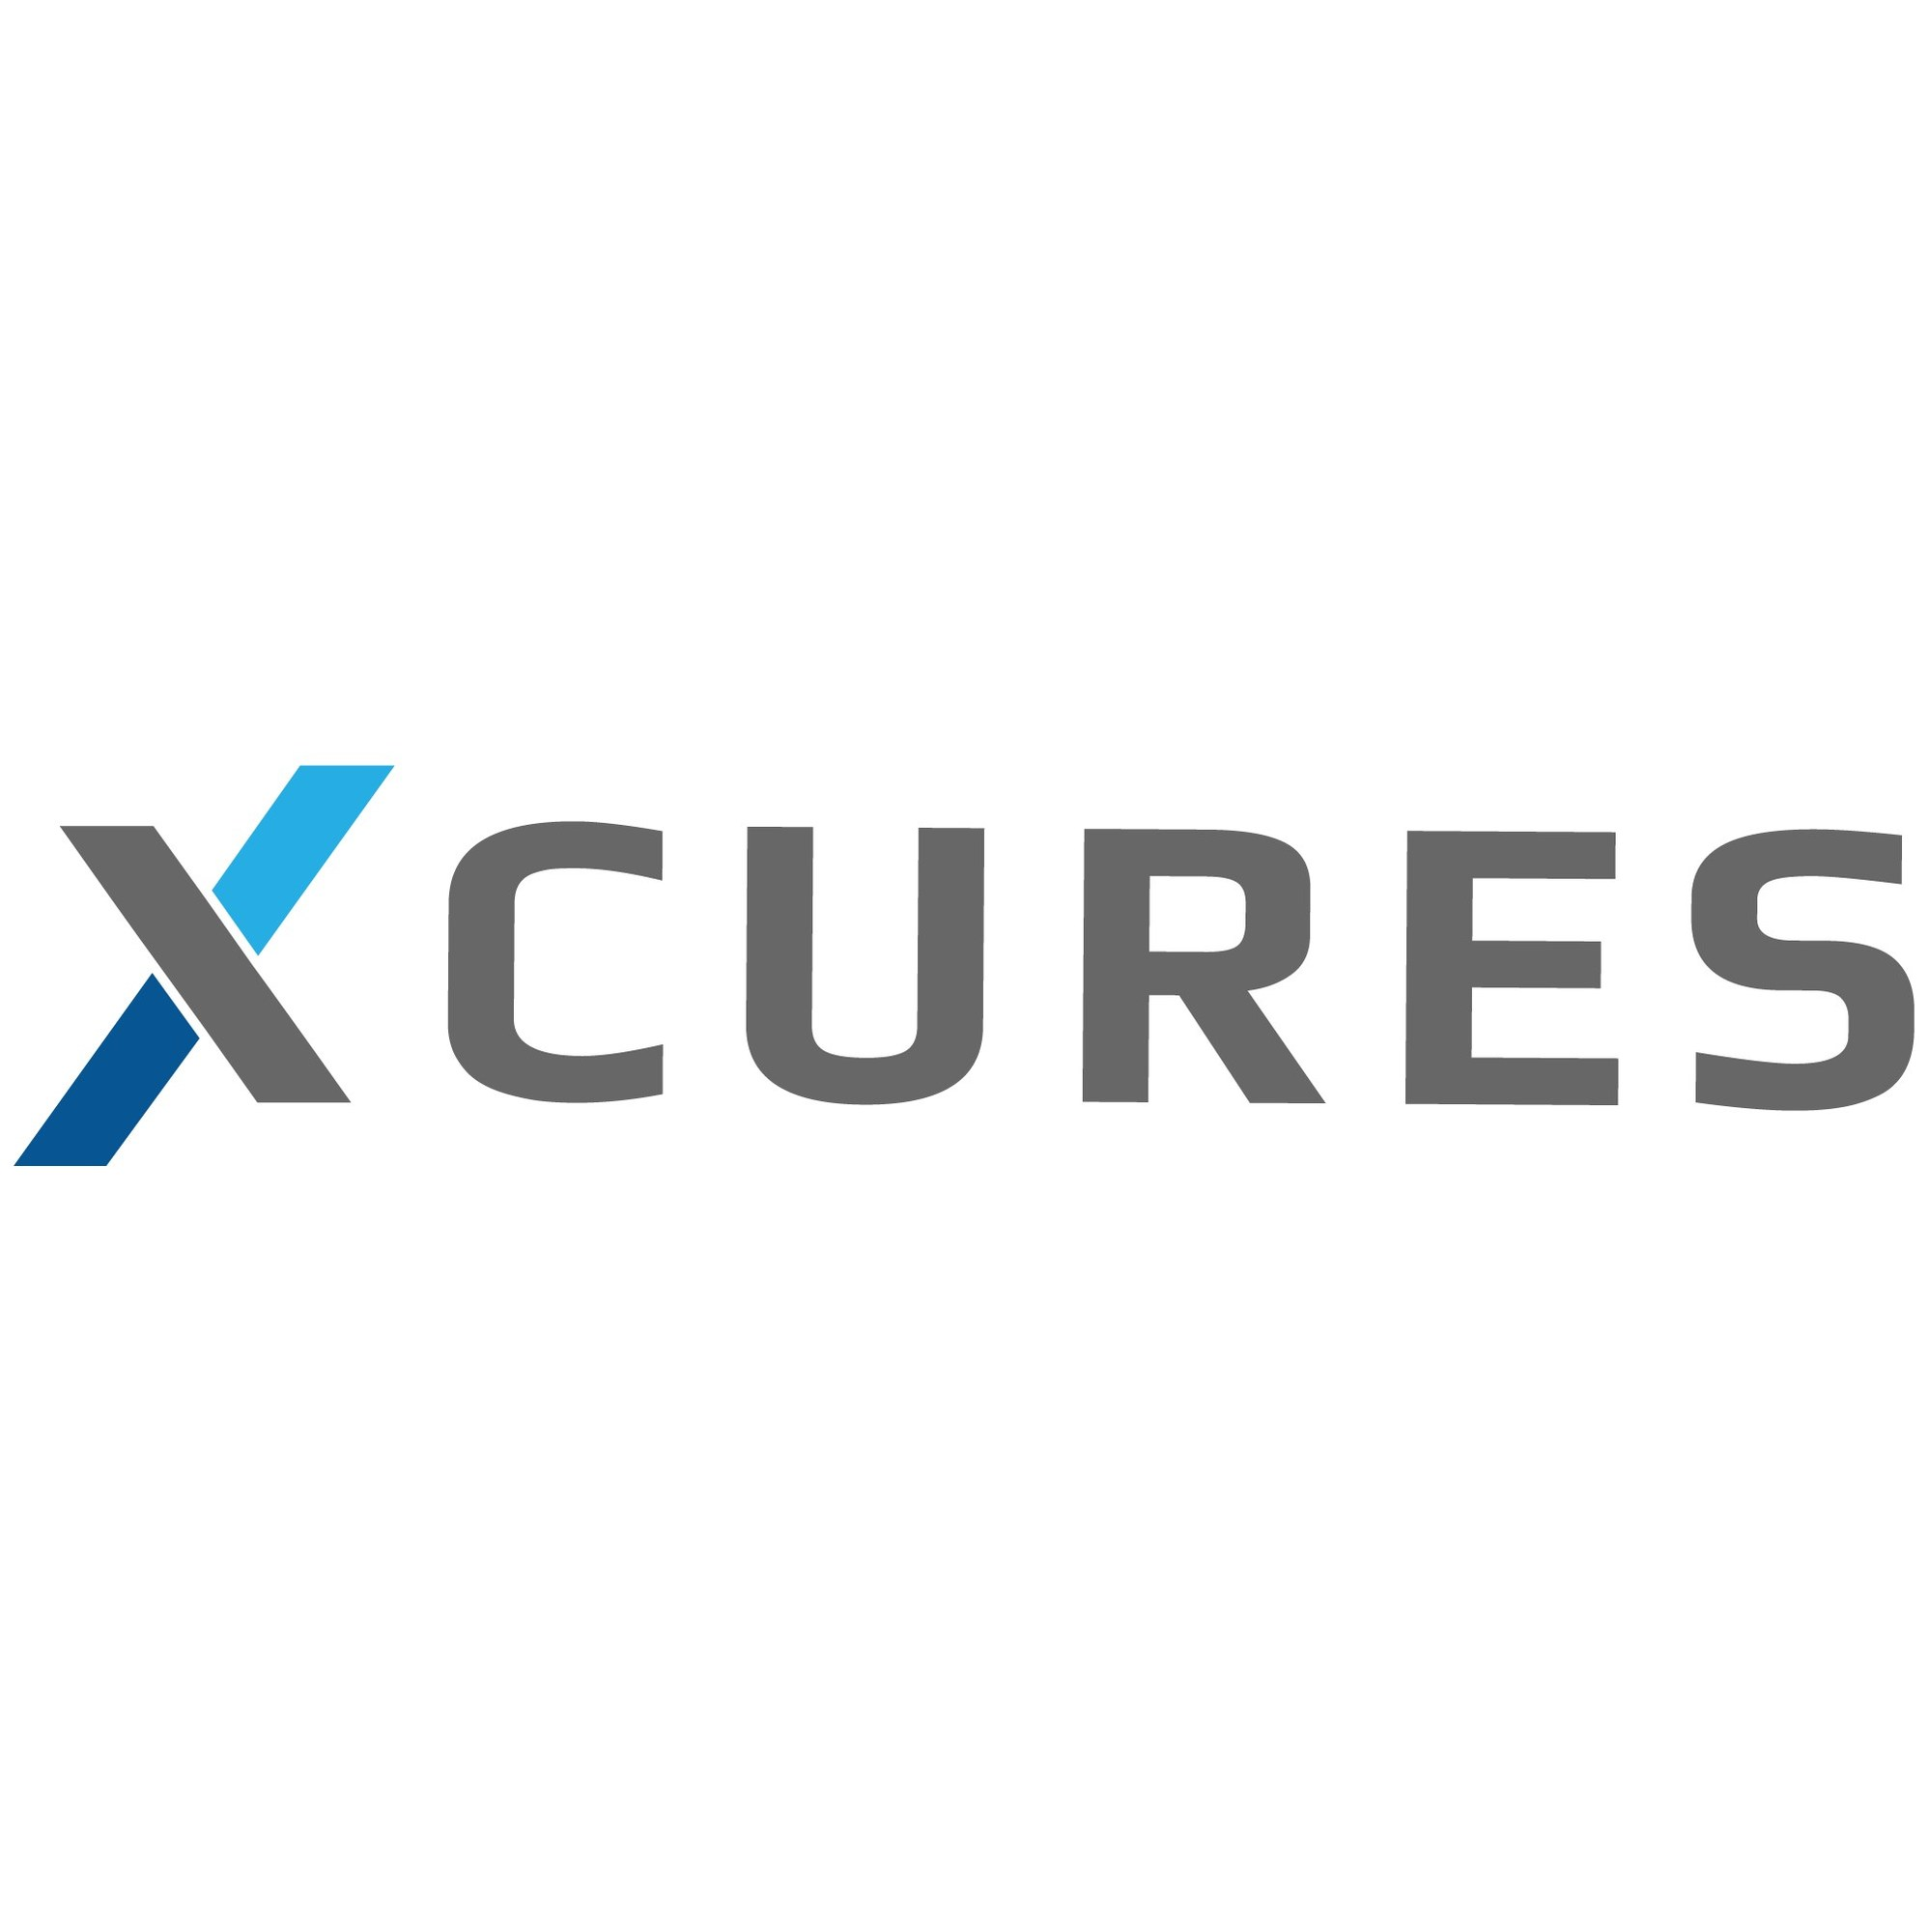 Mika Newton was placed as Chief Executive Officer of xCures